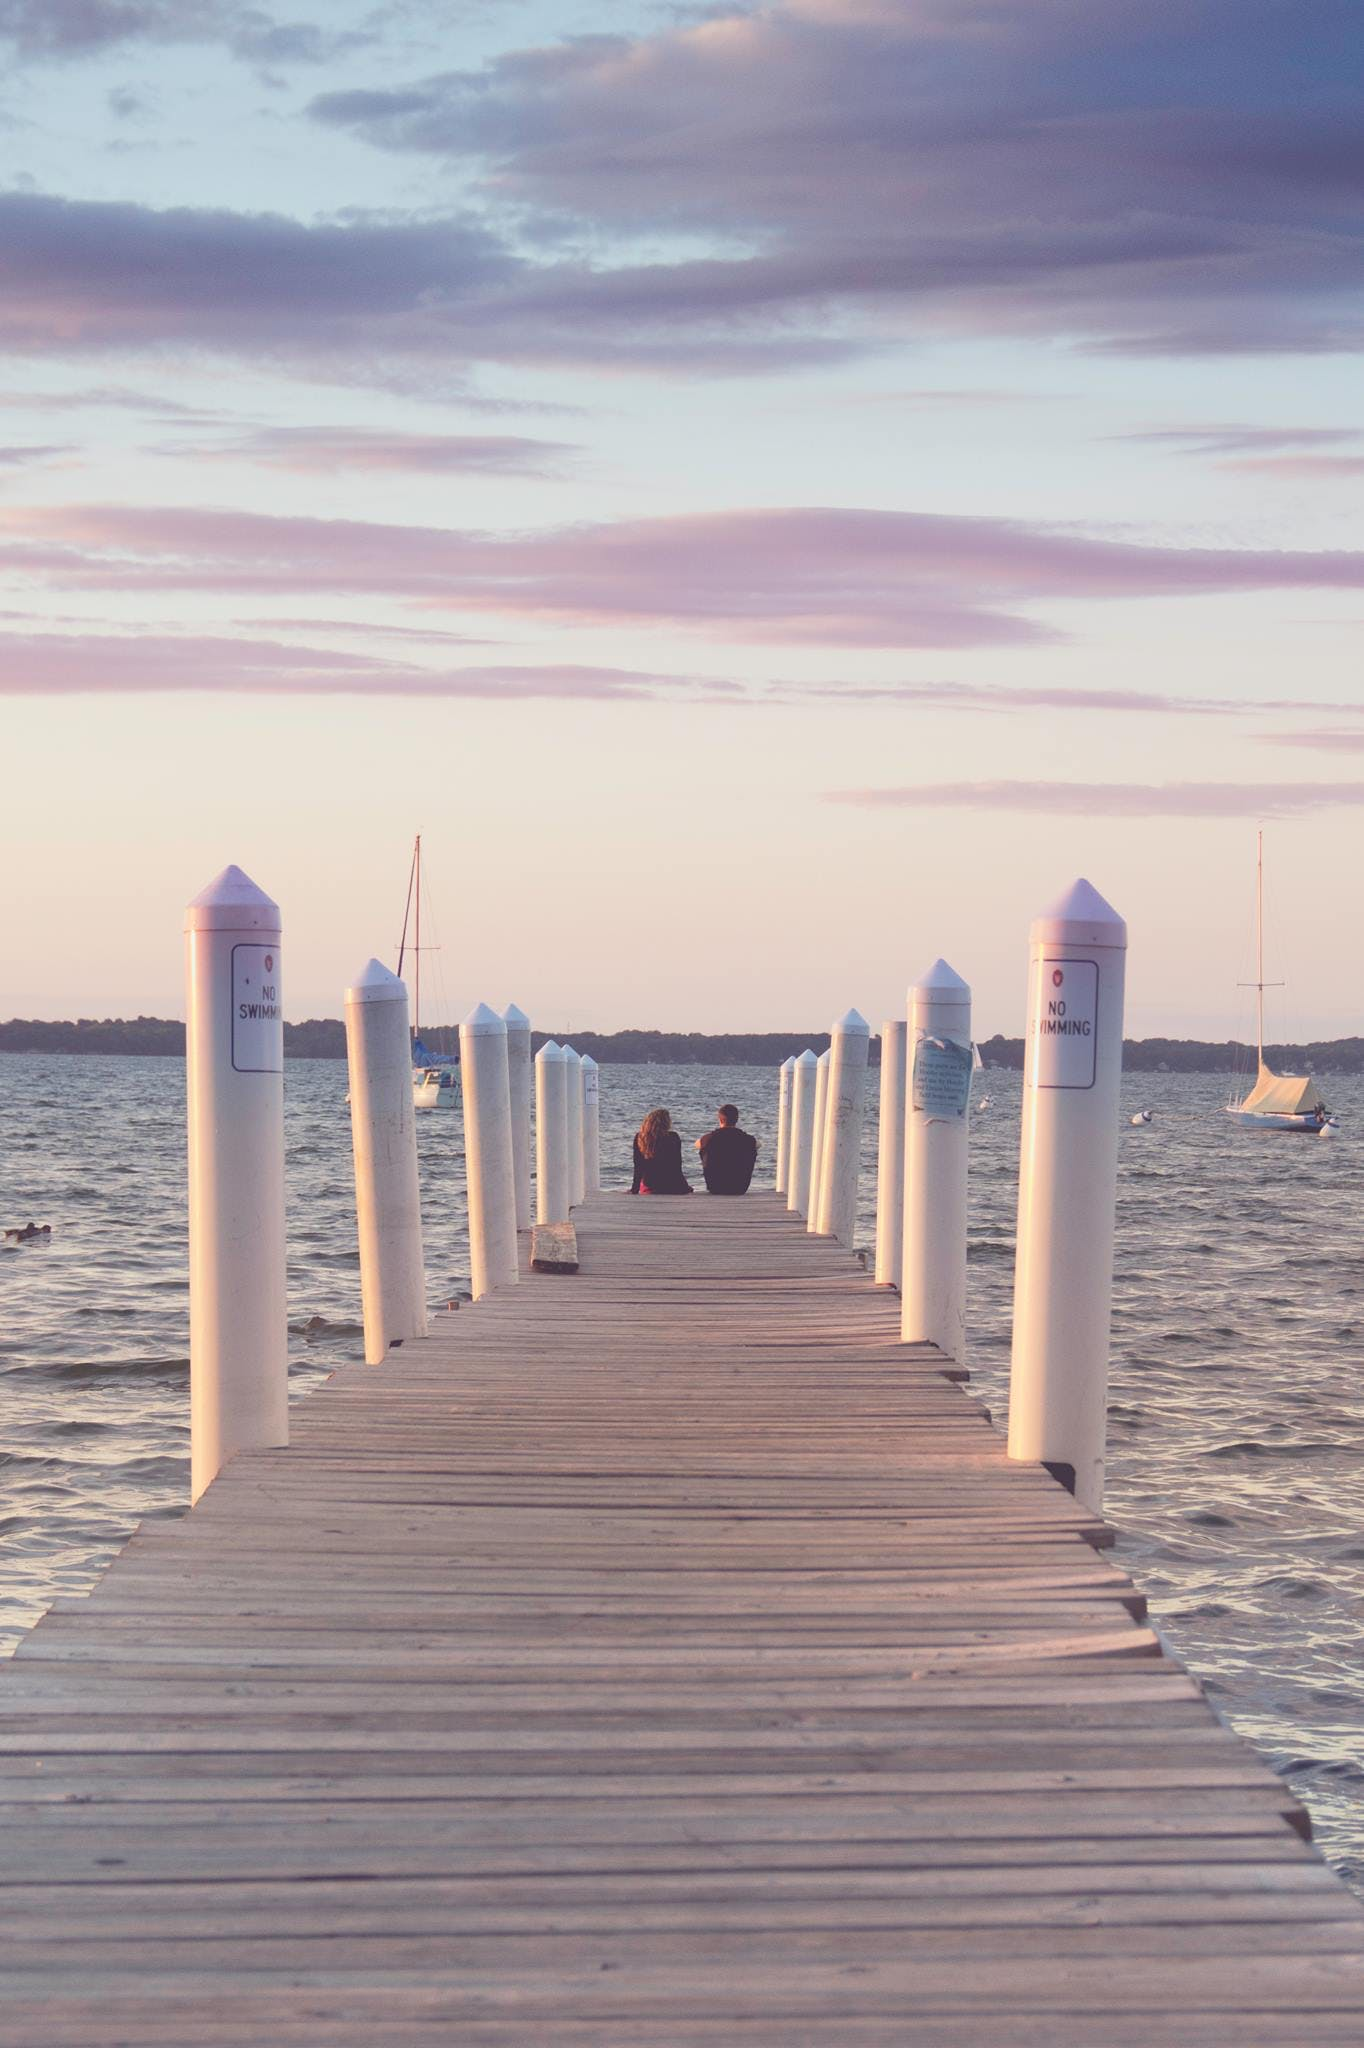 Free stock photo of couple, lake, pier, sailboats